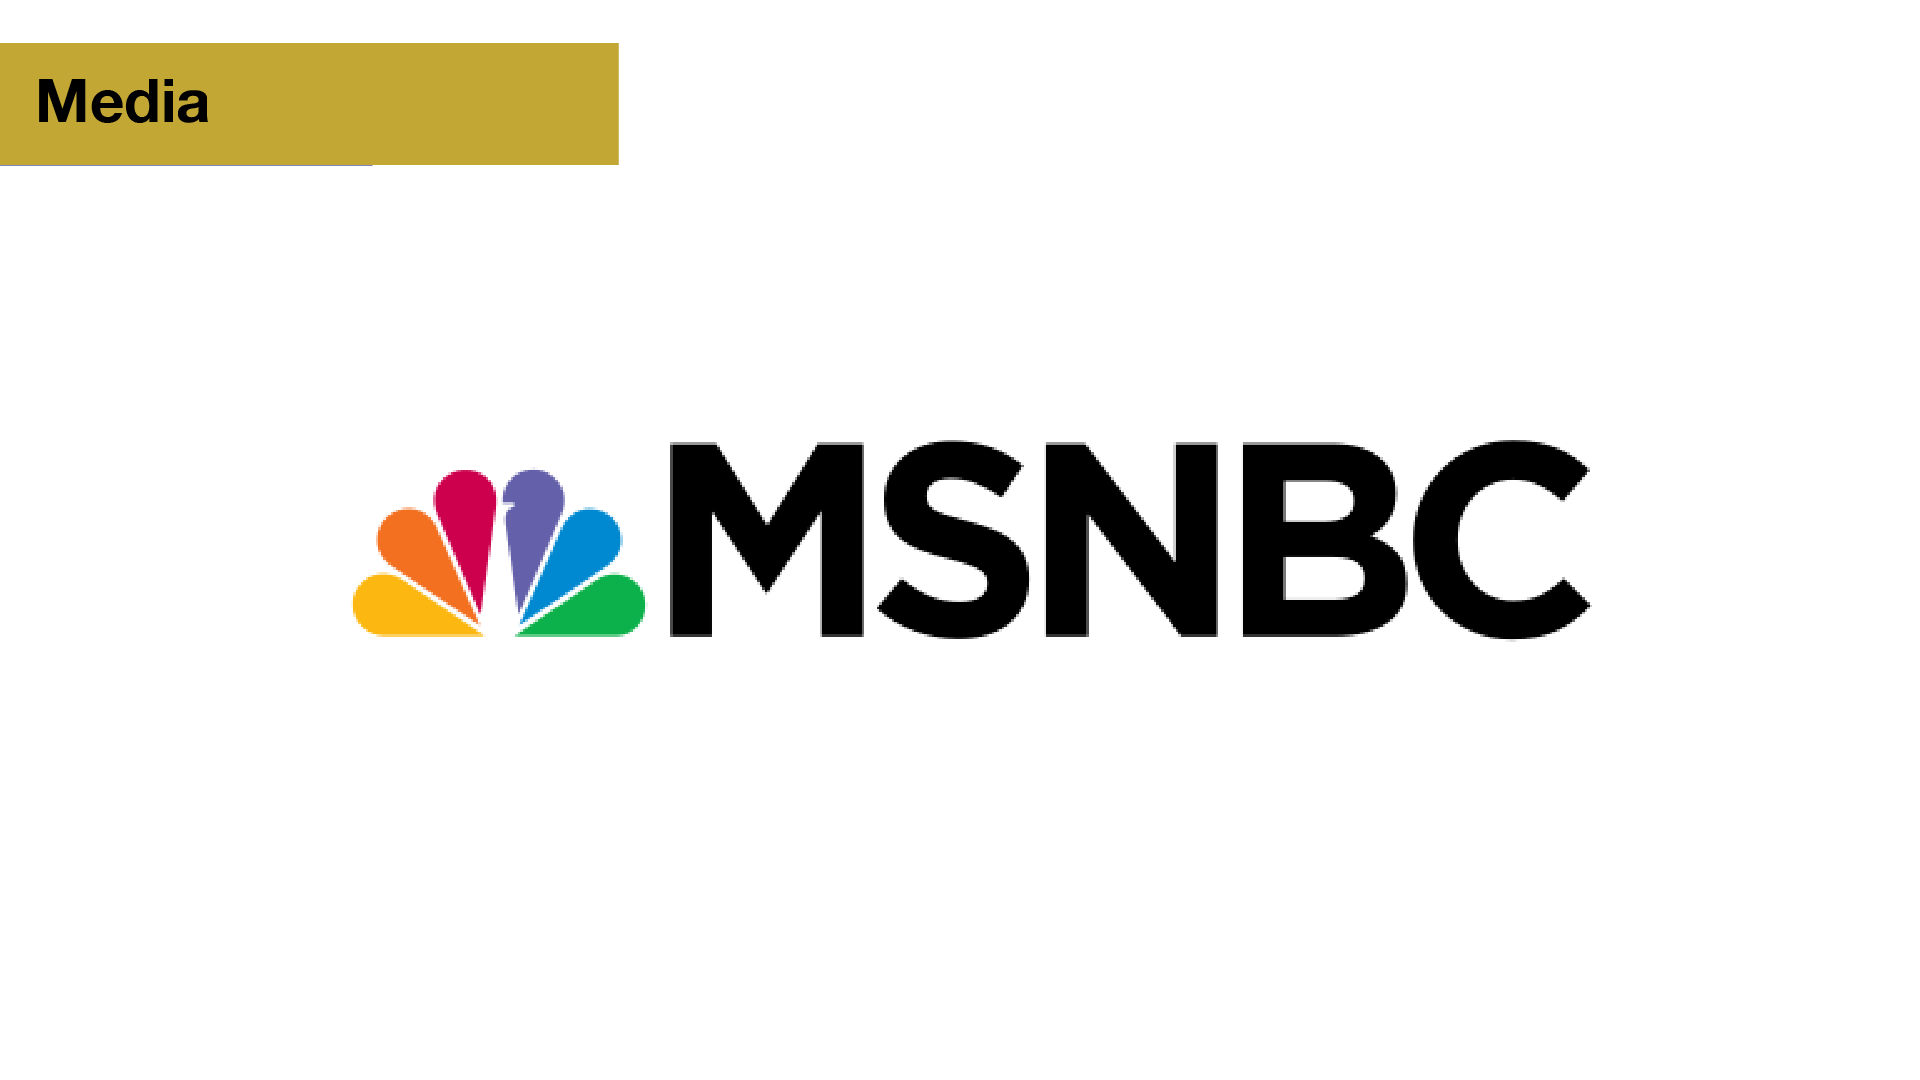 Posting Grades: MSNBC - The winners and losers on America's liberal cable home.